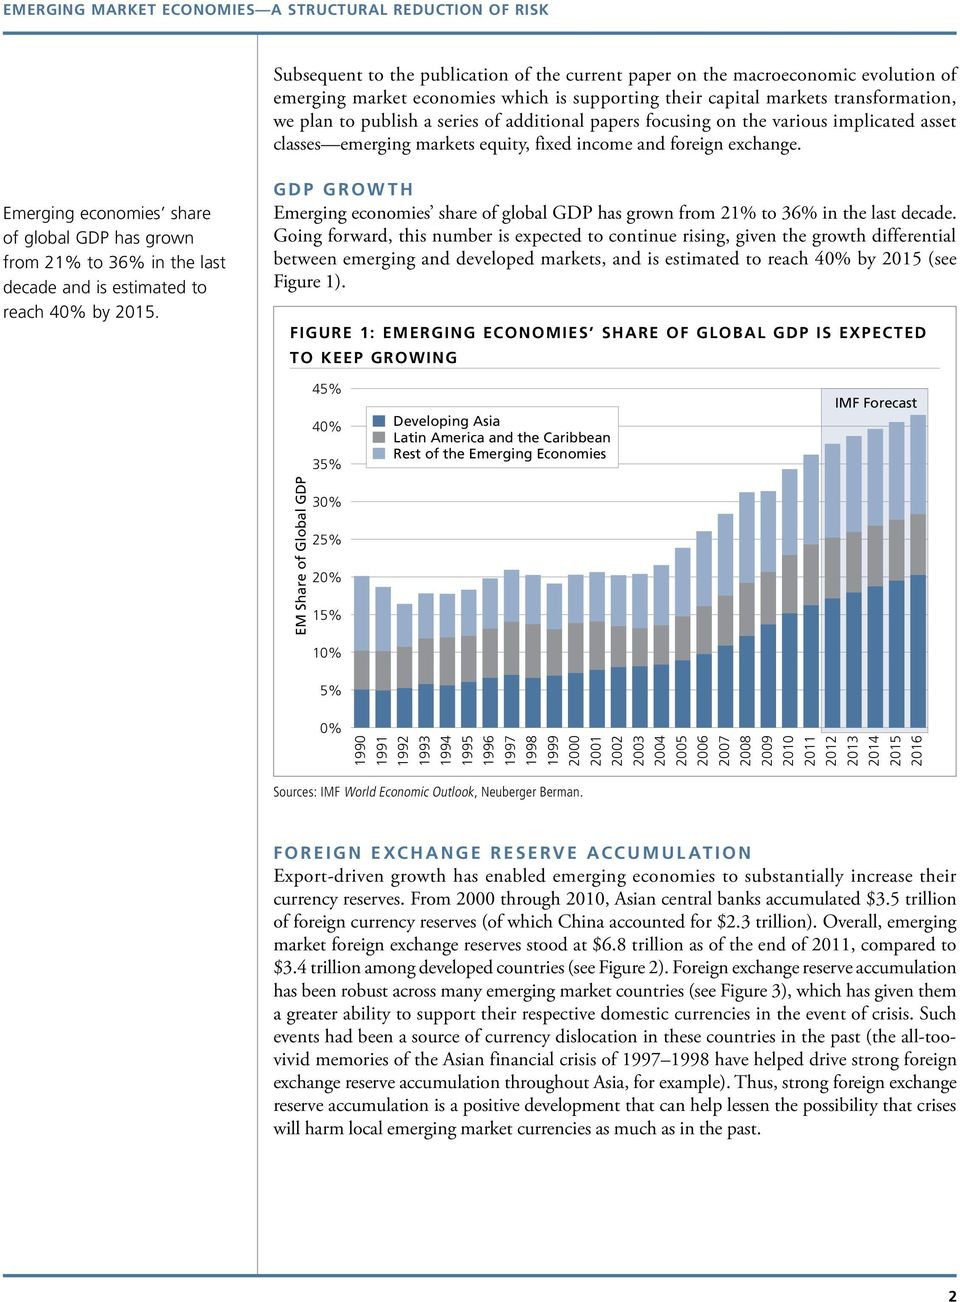 Emerging economies share of global GDP has grown from 21% to 36% in the last decade and is estimated to reach 4 by 2015.